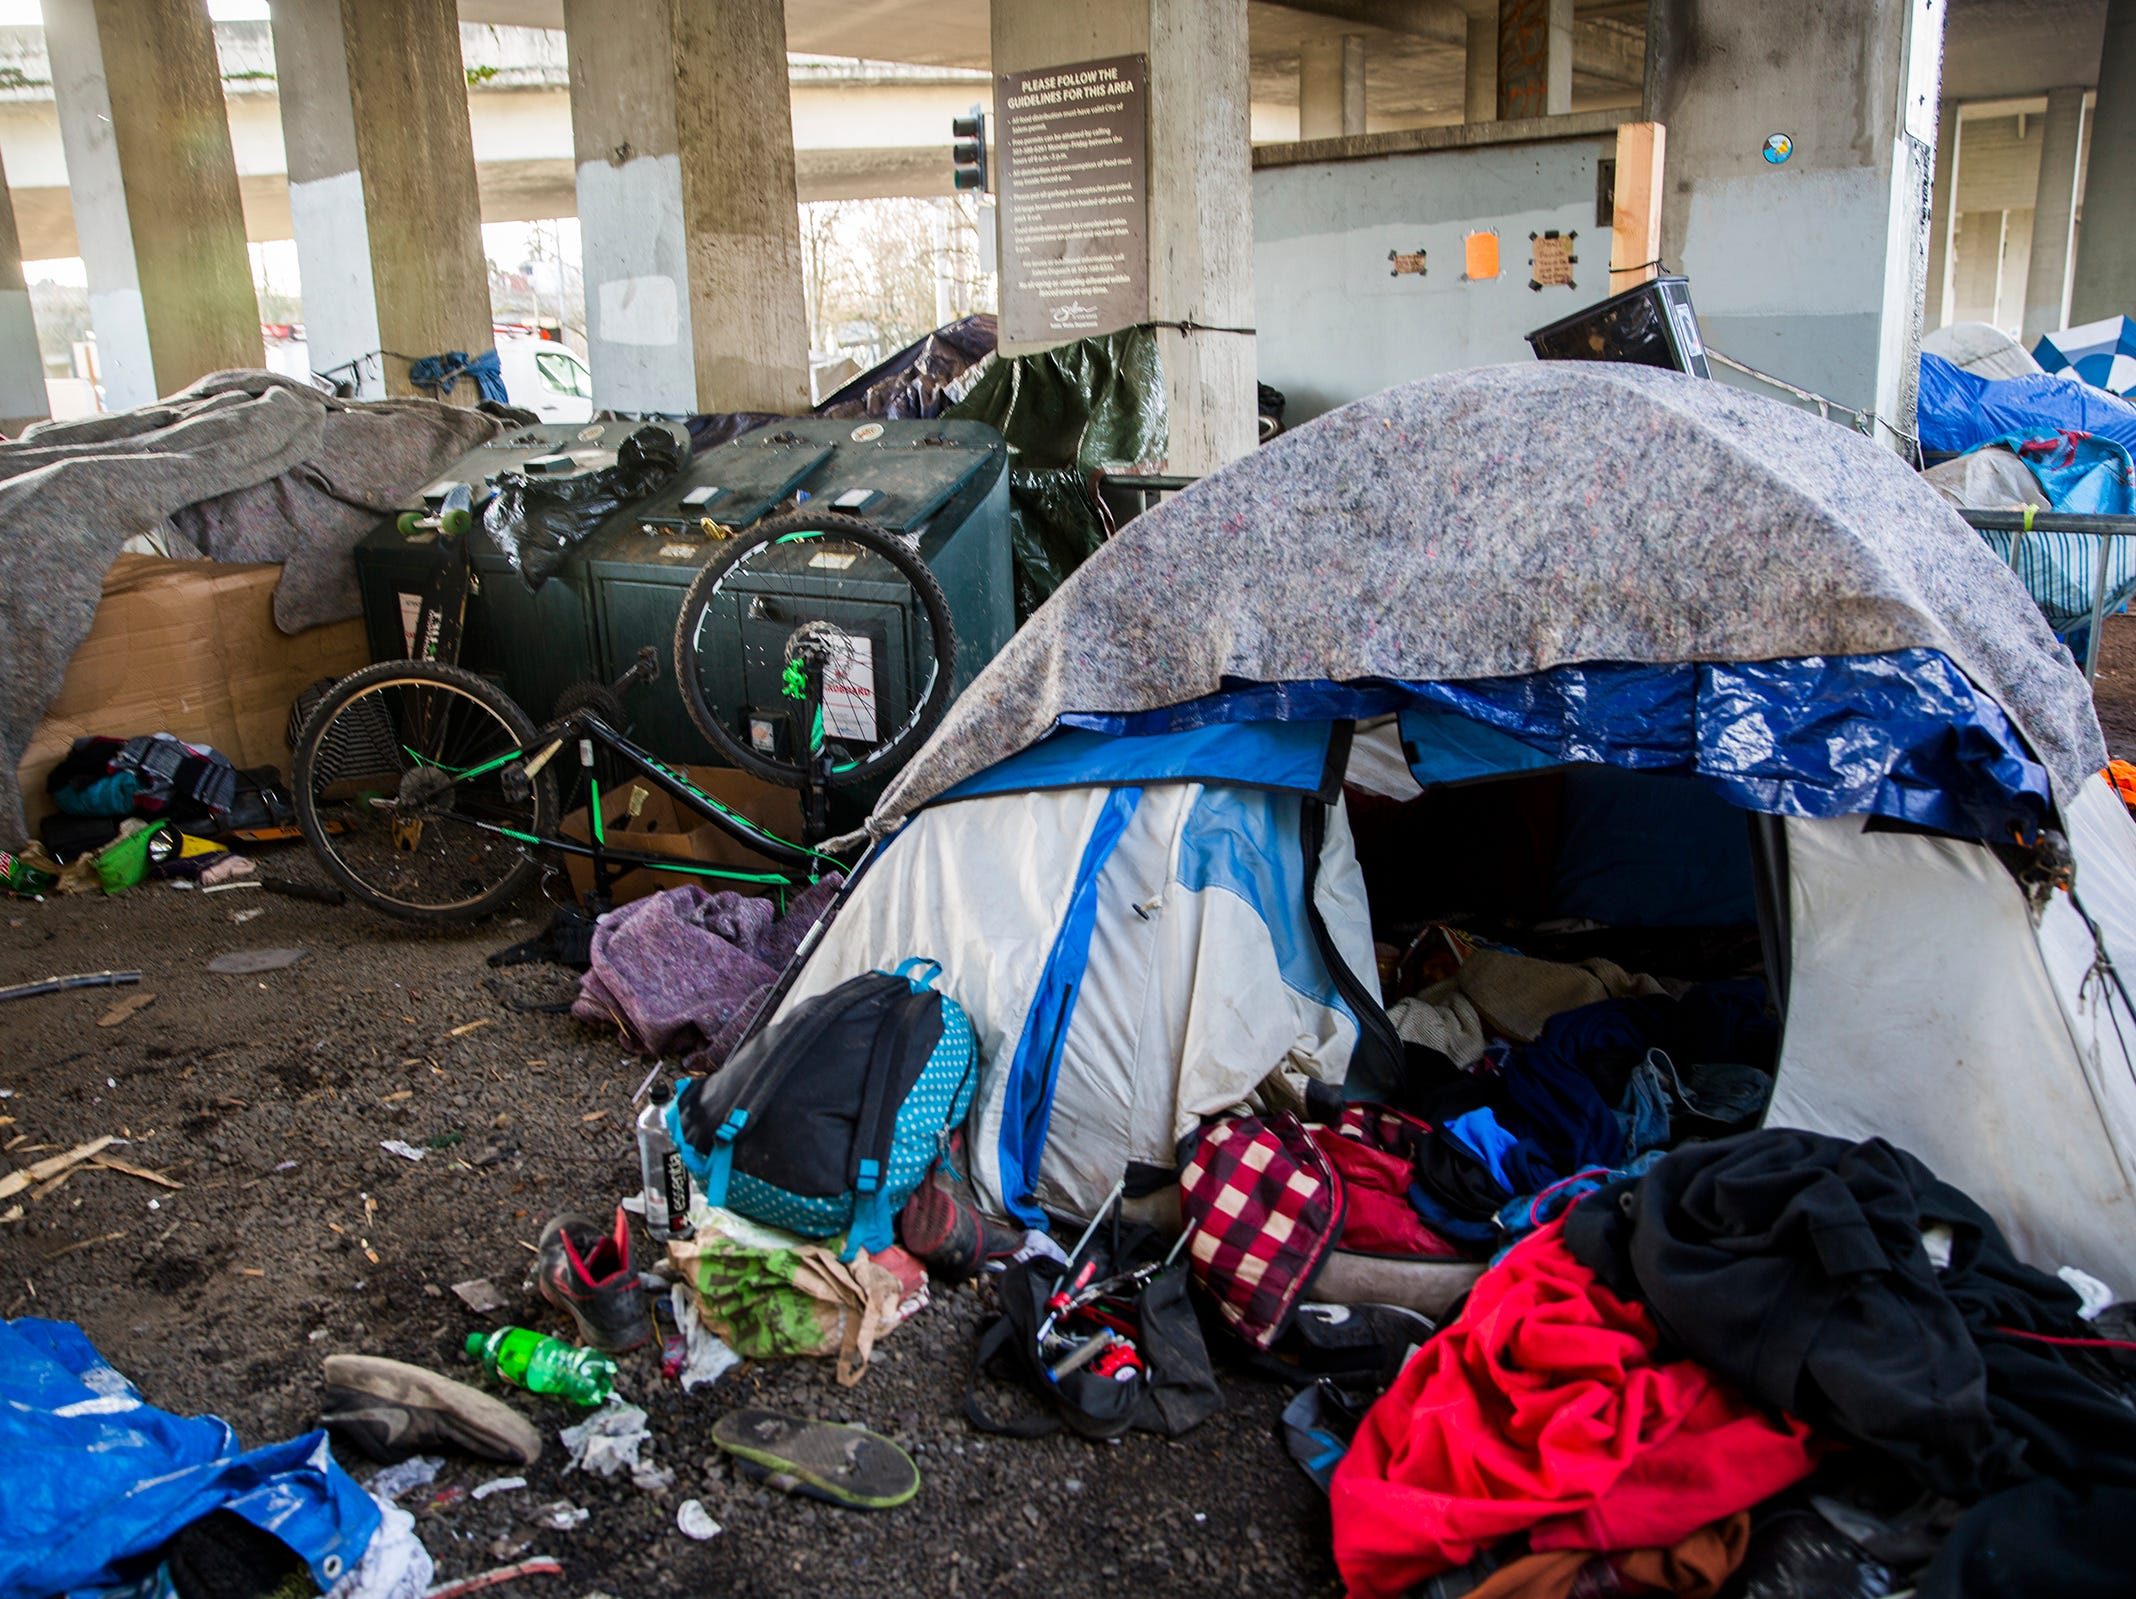 Tents and belongings crowd the edge of Marion Square Park under the Marion St. Bridge on Front St. NE in Salem on Thursday, Jan. 10, 2019.